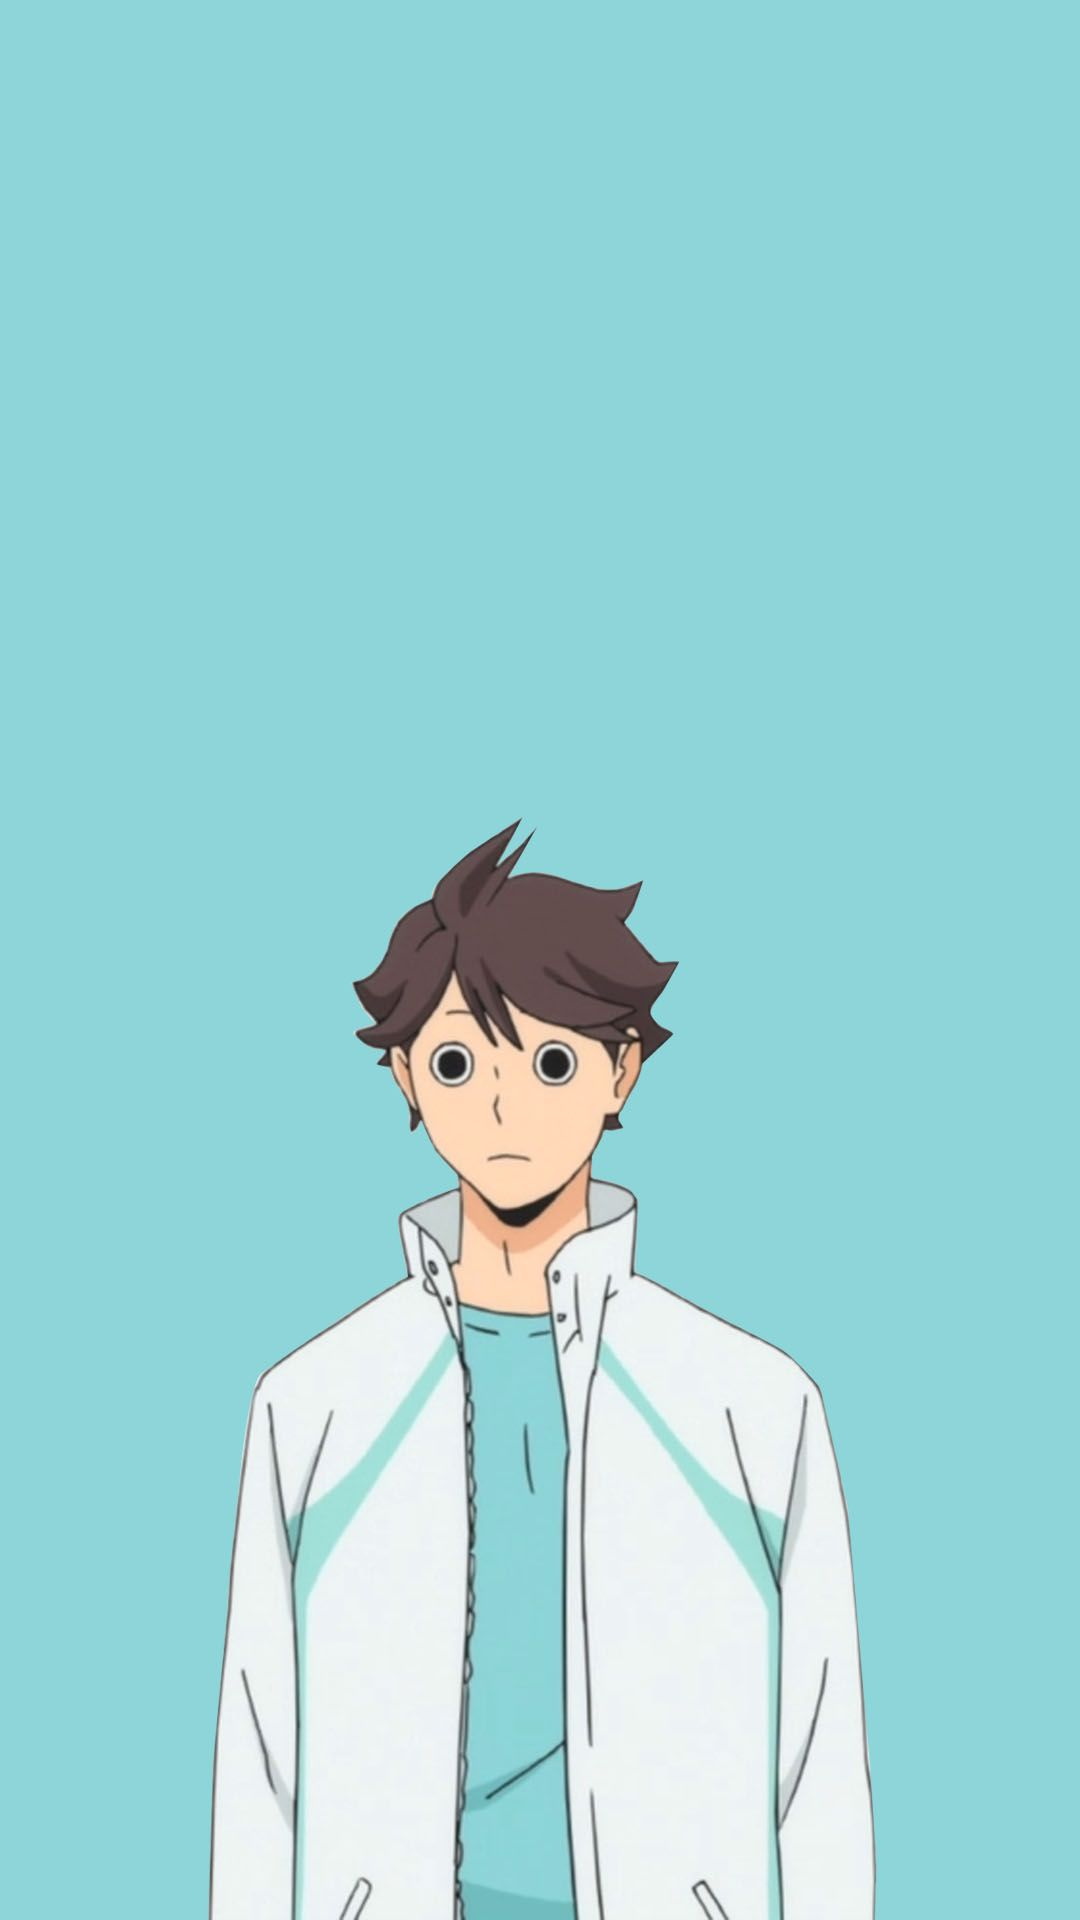 oikawa trashcan speechlessness wallpaper Haikyuu